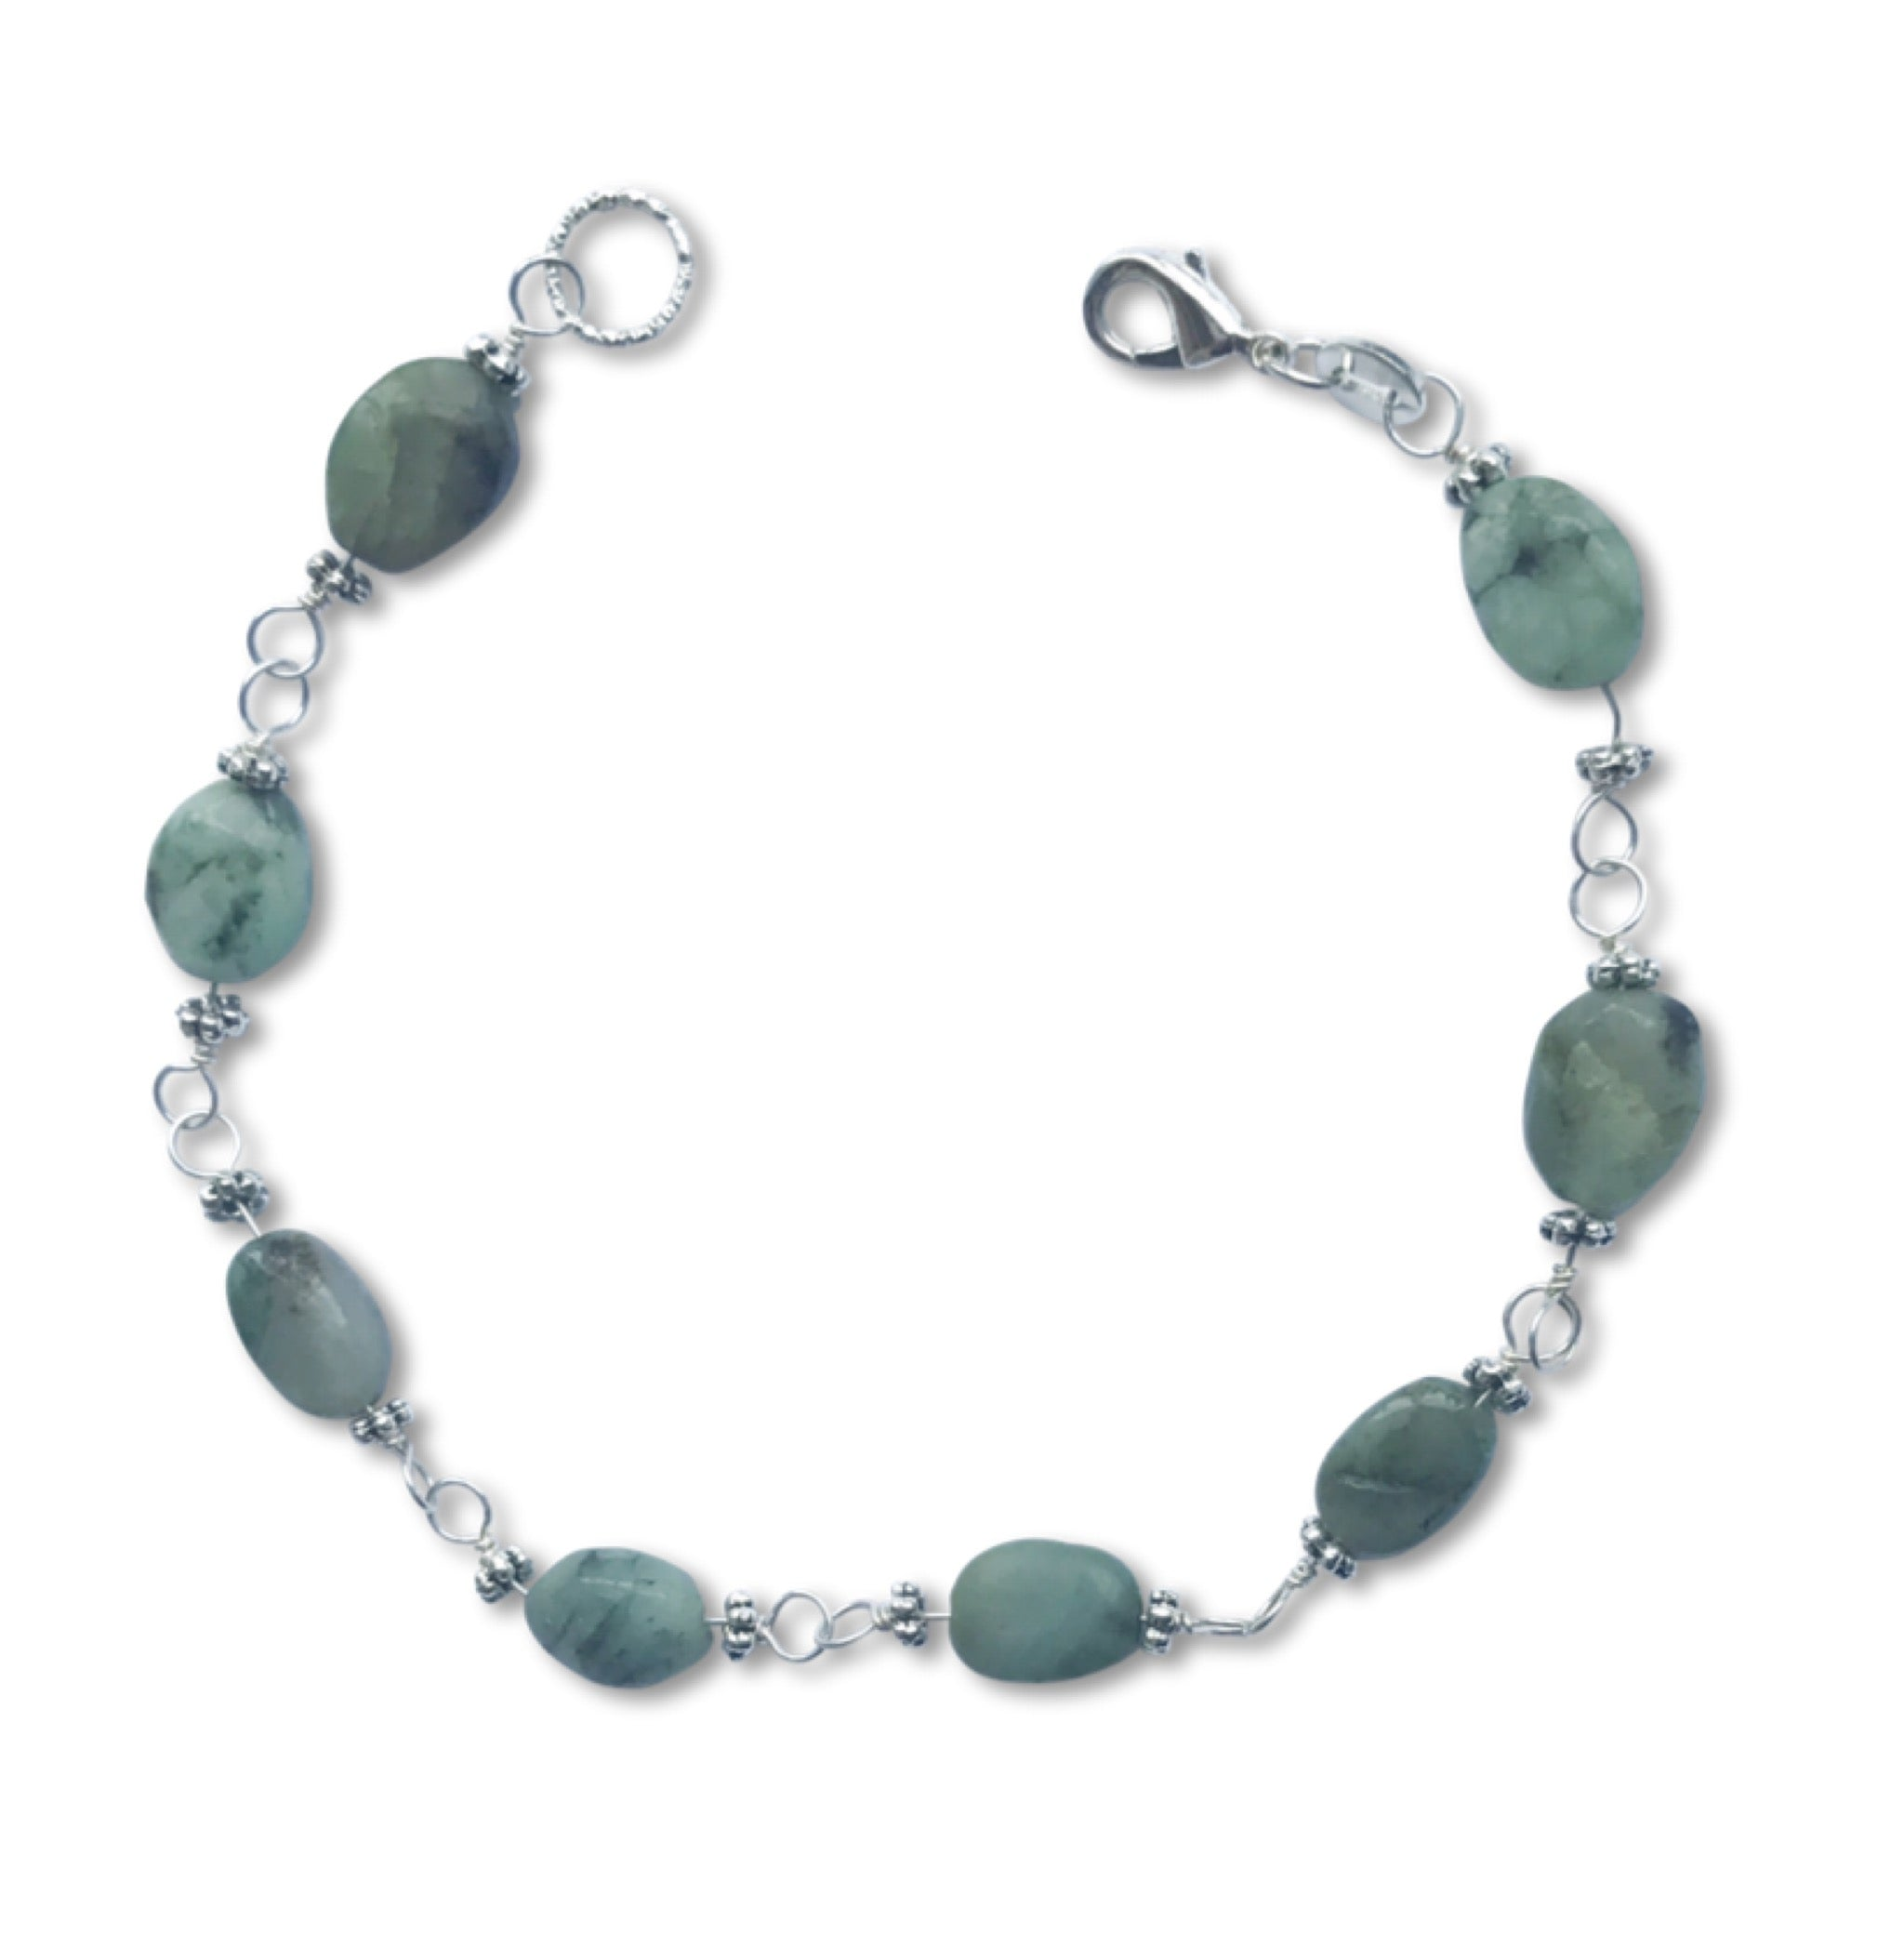 Christmas Gifts for Her - Handmade Emerald Bracelet - Swanky Collection